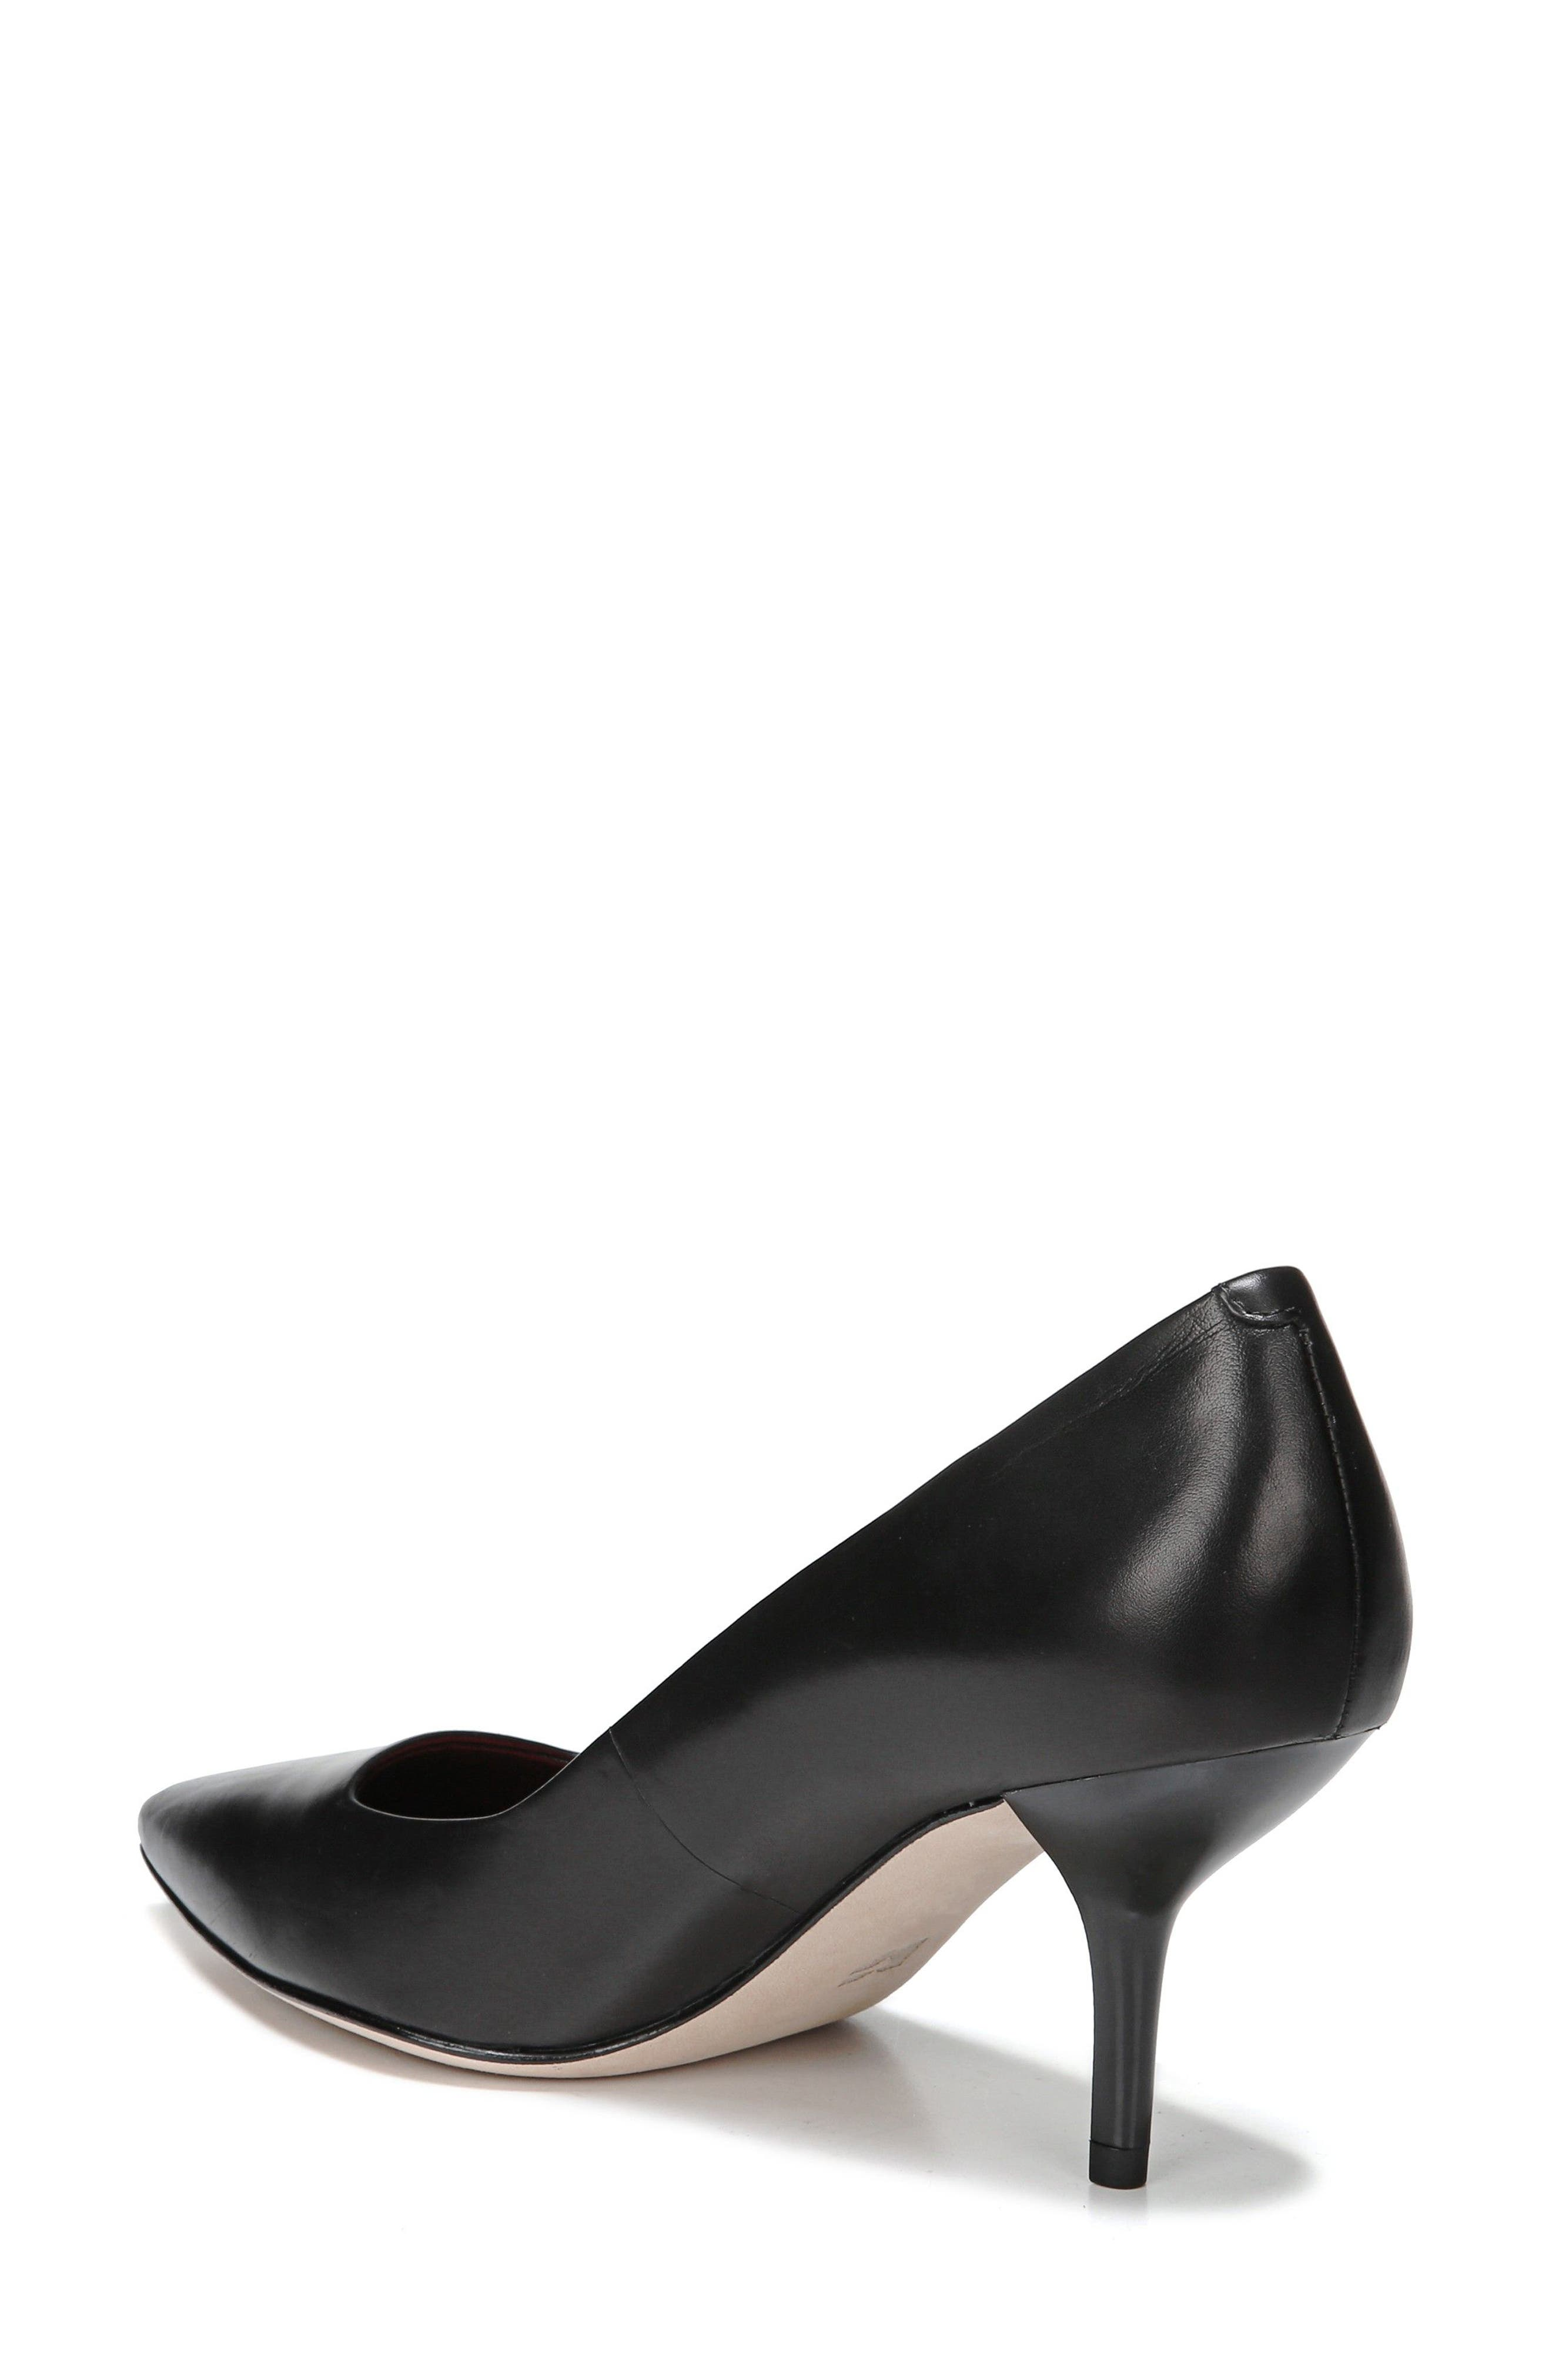 Meina Pointy Toe Pump,                             Alternate thumbnail 5, color,